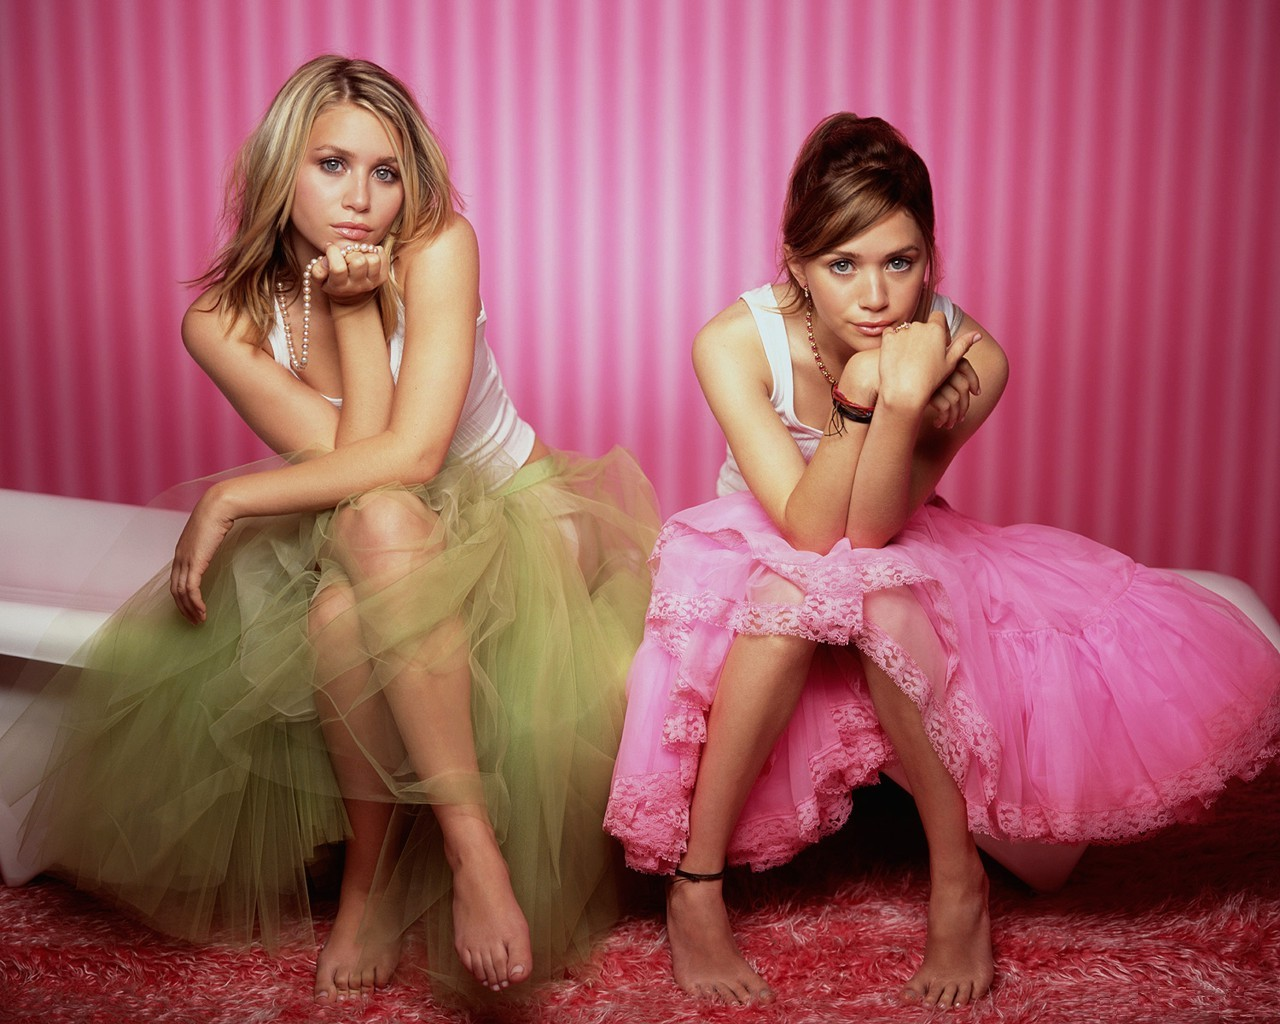 http://2.bp.blogspot.com/-C5ZAZBUAKo4/Tbo29_0VTcI/AAAAAAAAALM/szFztAm5kaM/s1600/mary-kate-and-ashley_olsen.jpg